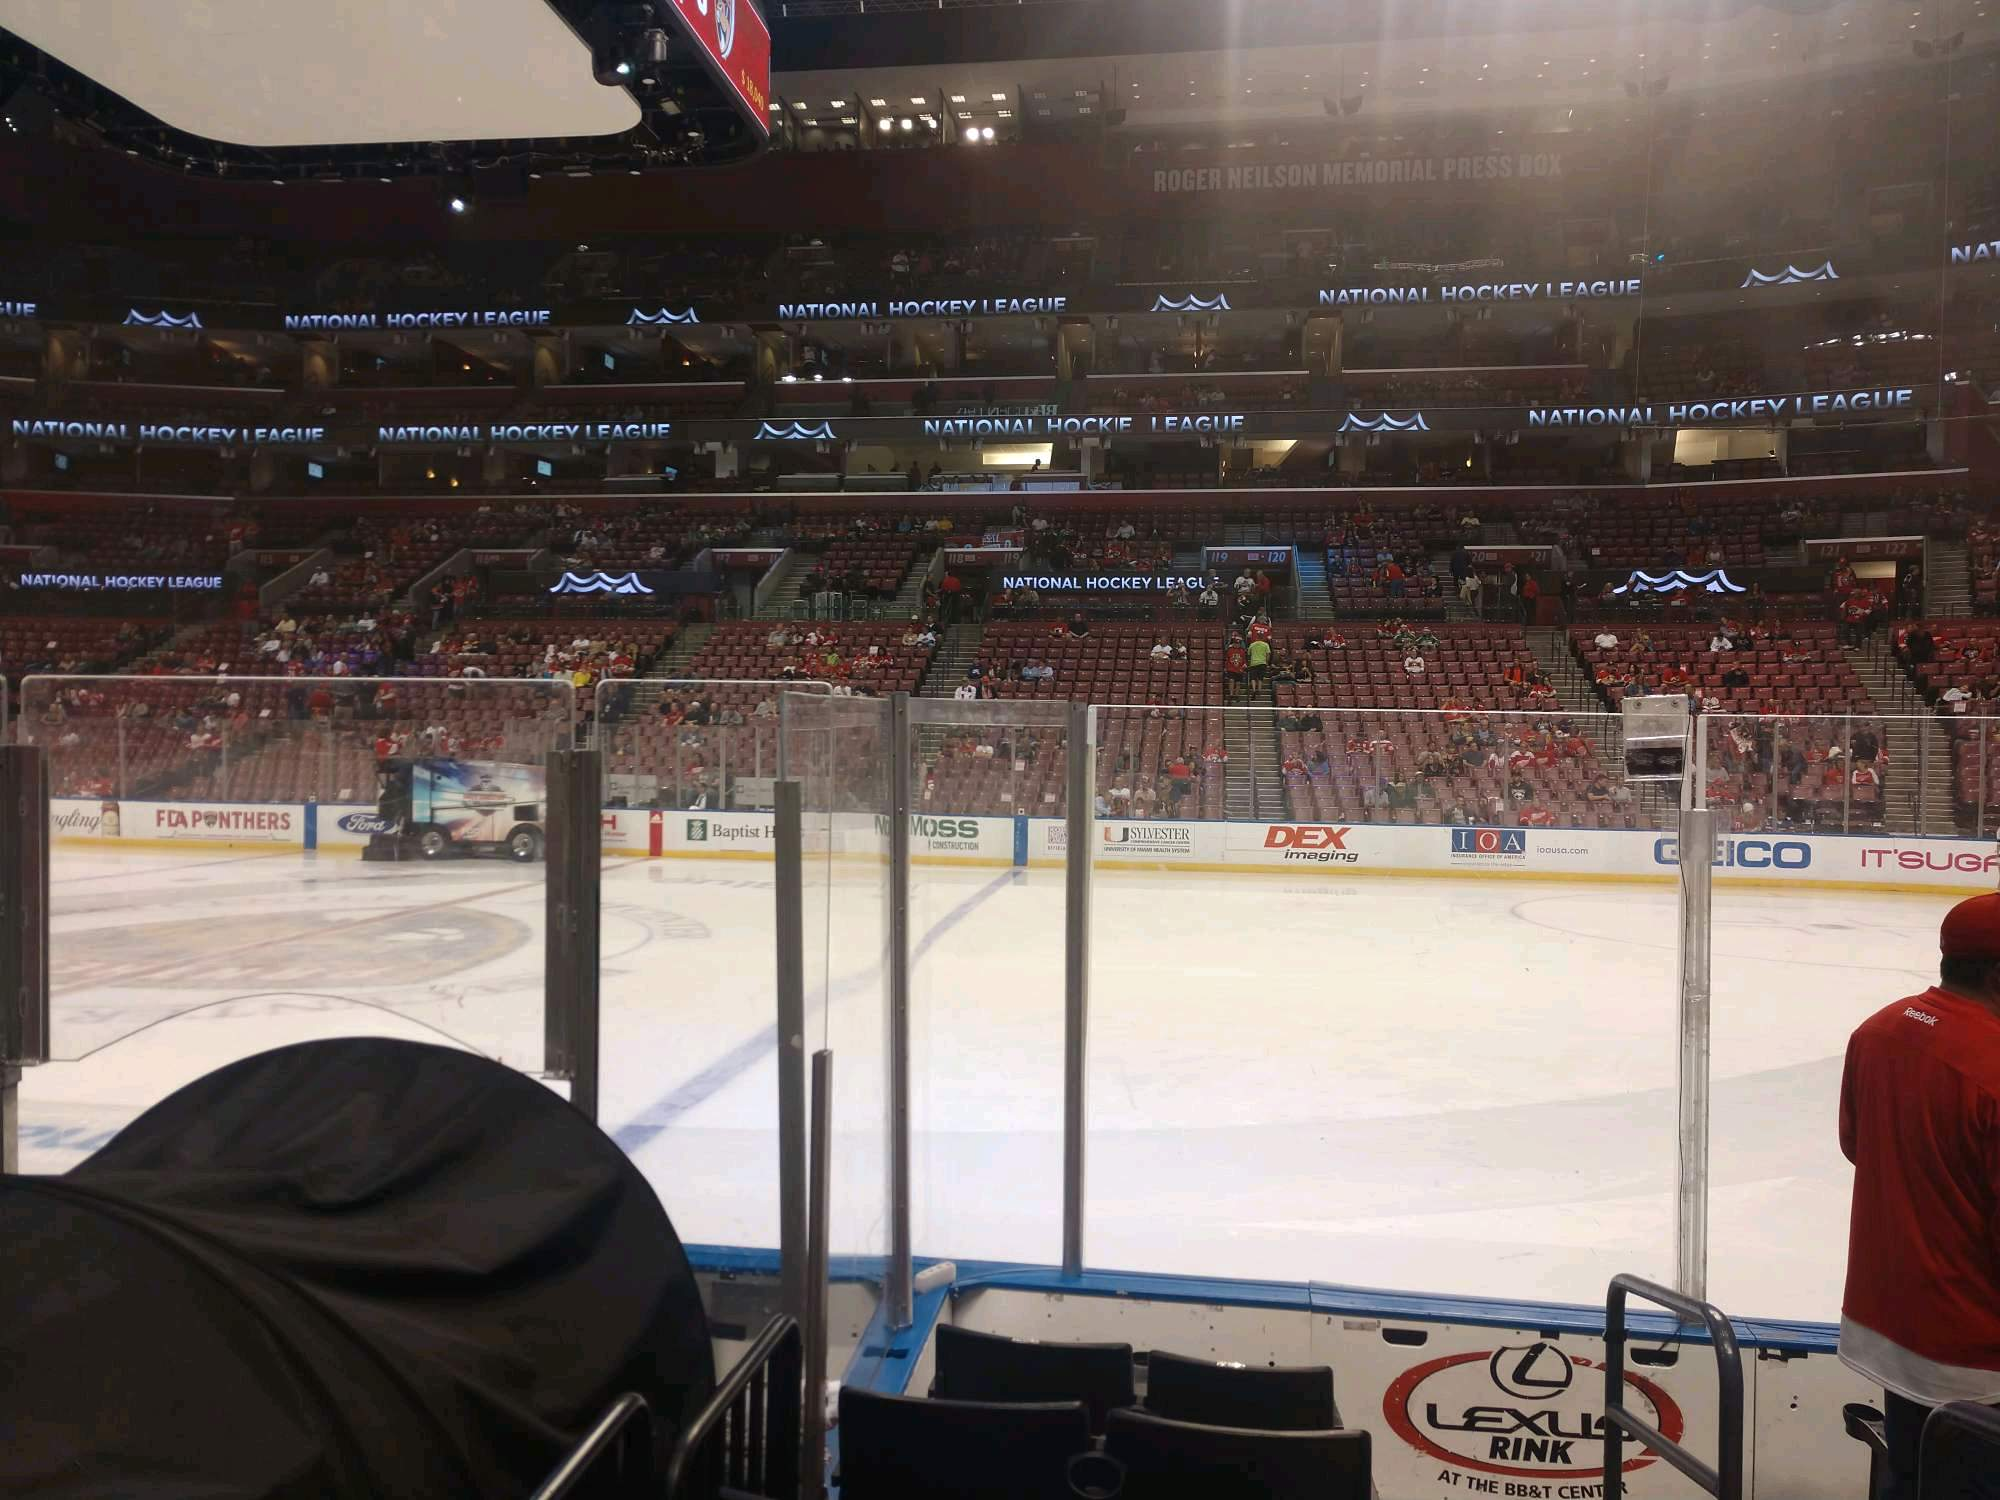 BB&T Center Section 134 Row 6 Seat 1